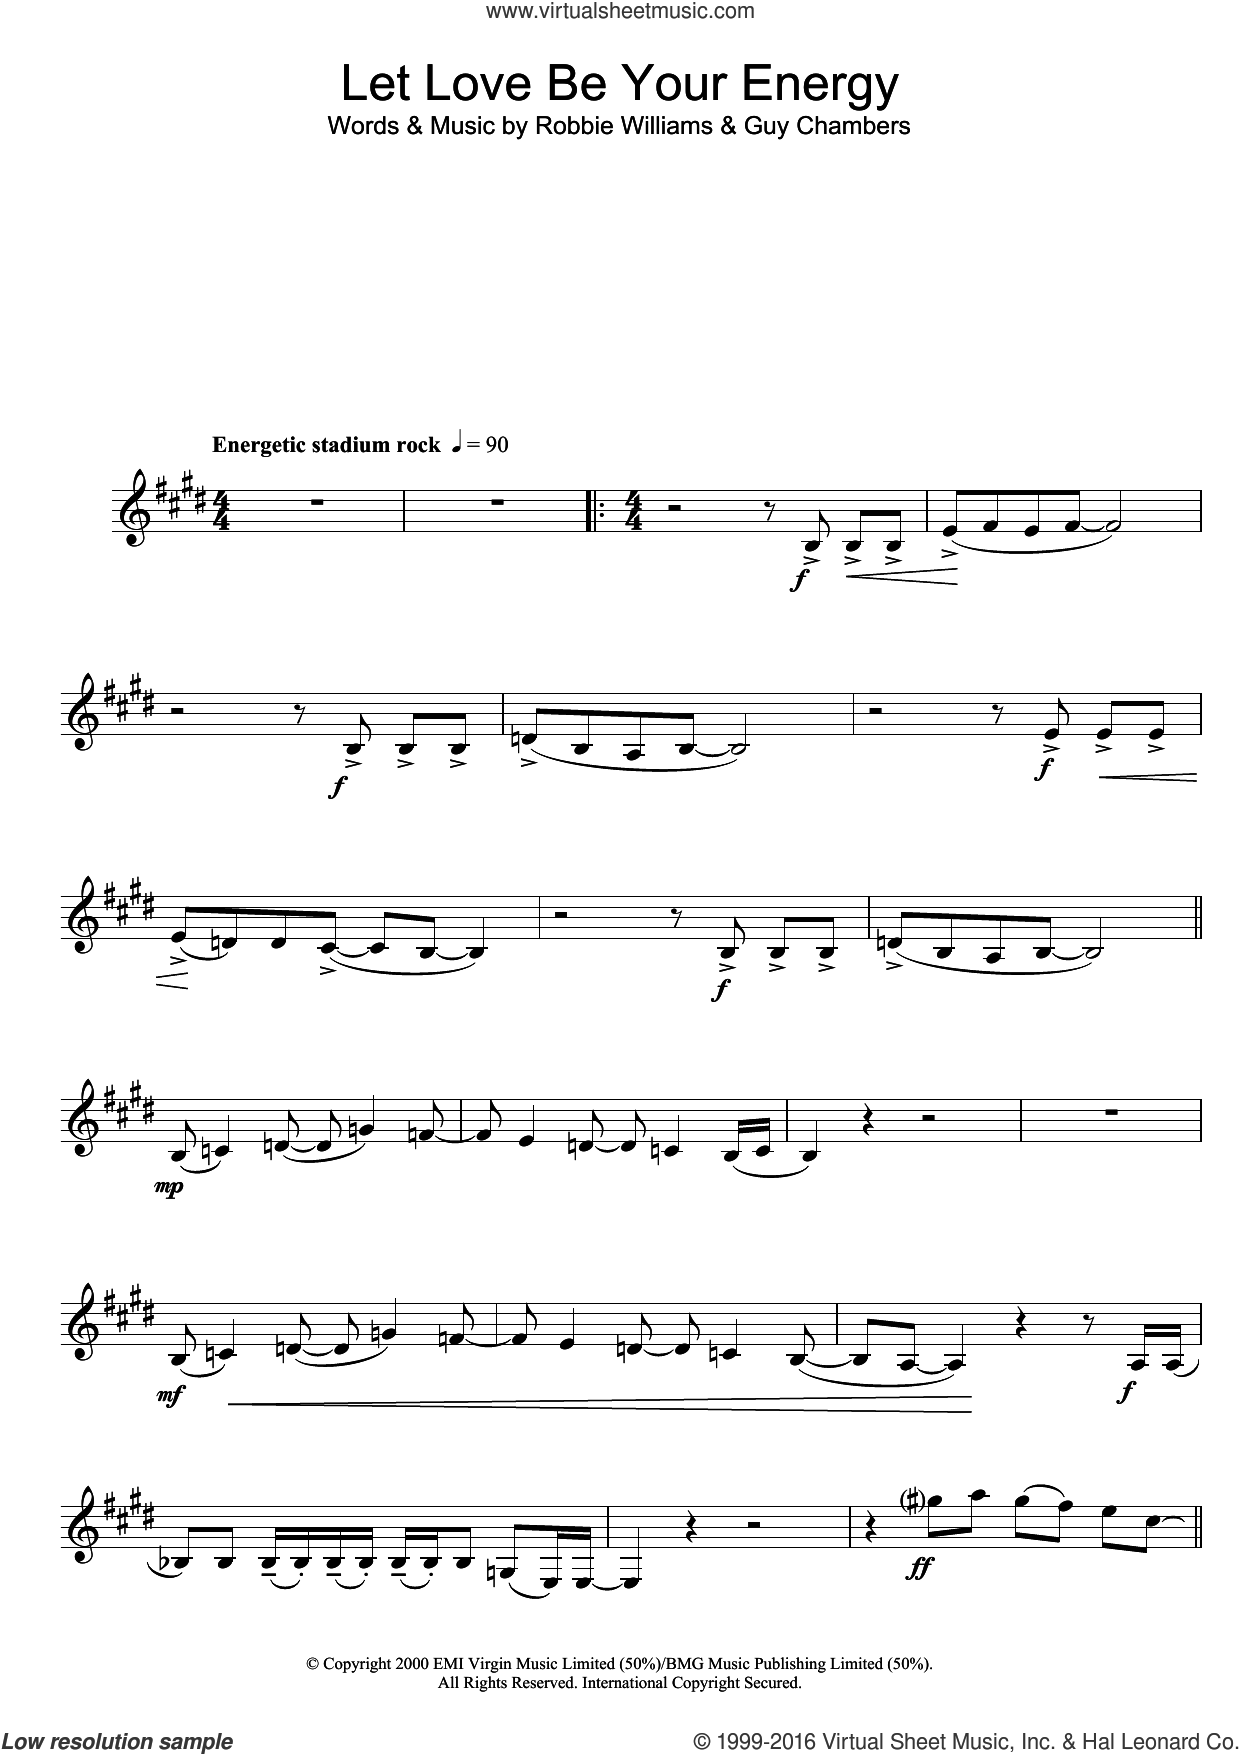 Let Love Be Your Energy sheet music for clarinet solo by Robbie Williams and Guy Chambers, intermediate skill level